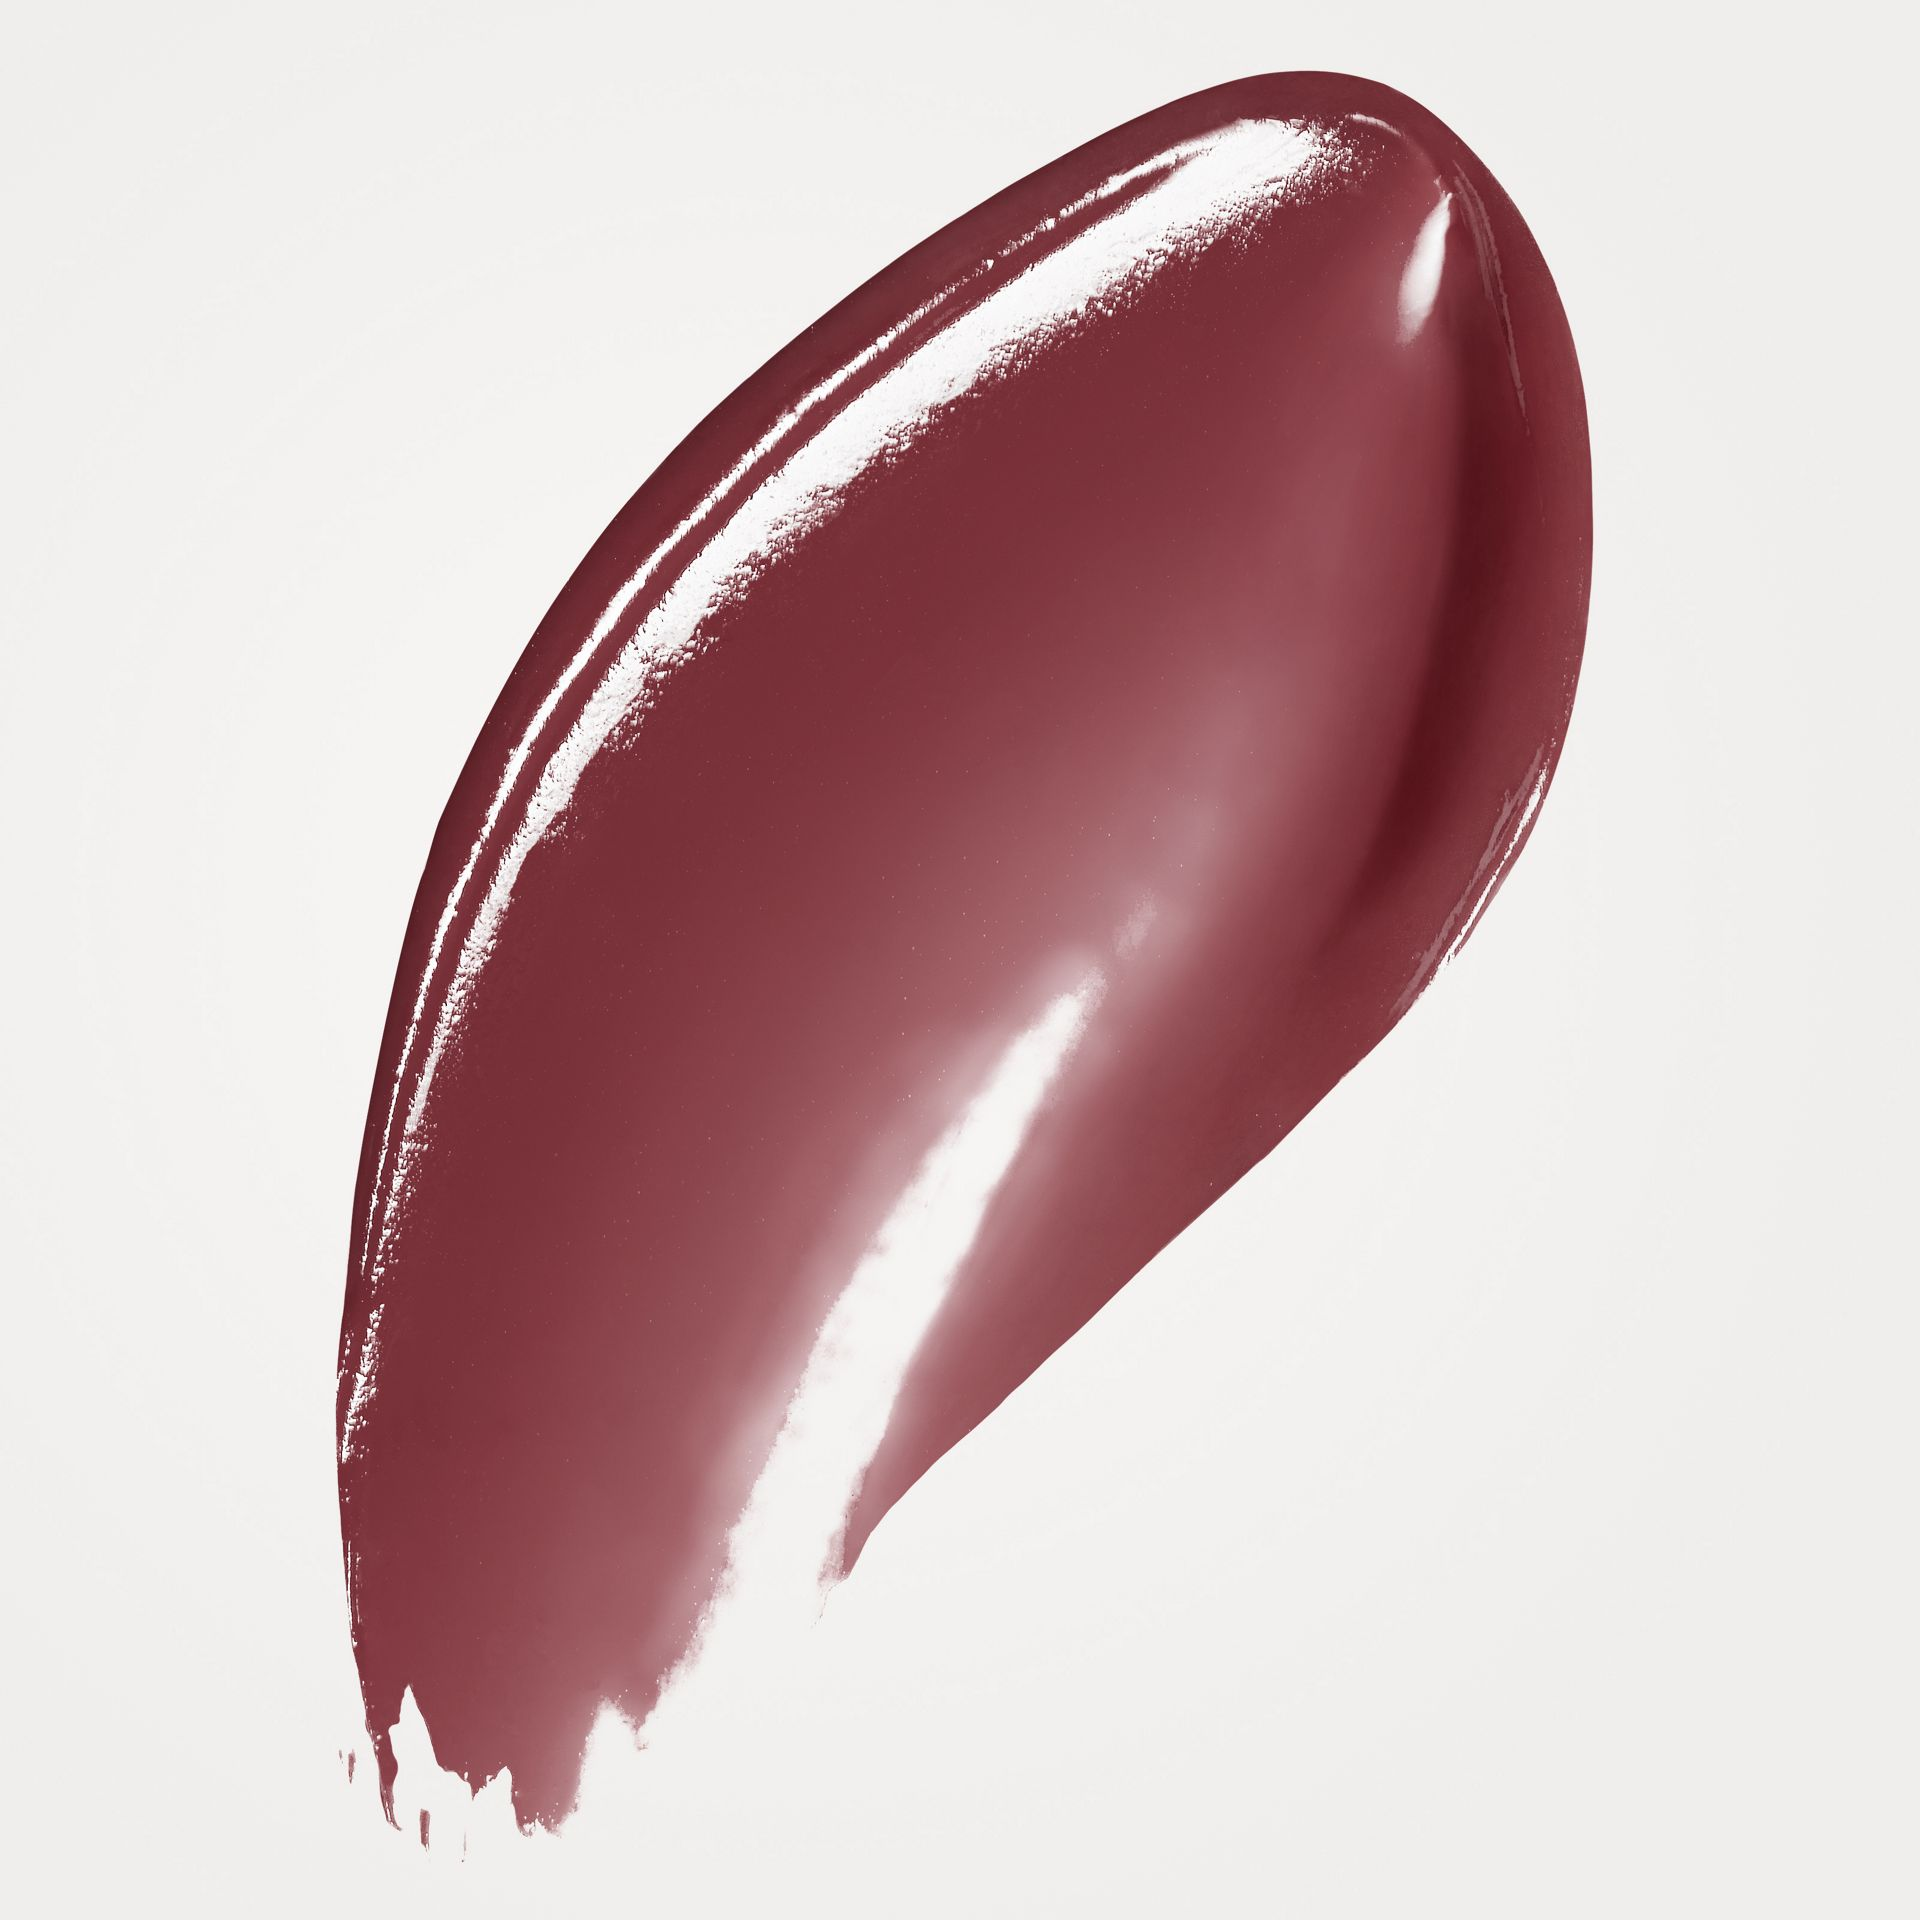 Burberry Kisses - Oxblood No.97 - Donna | Burberry - immagine della galleria 2